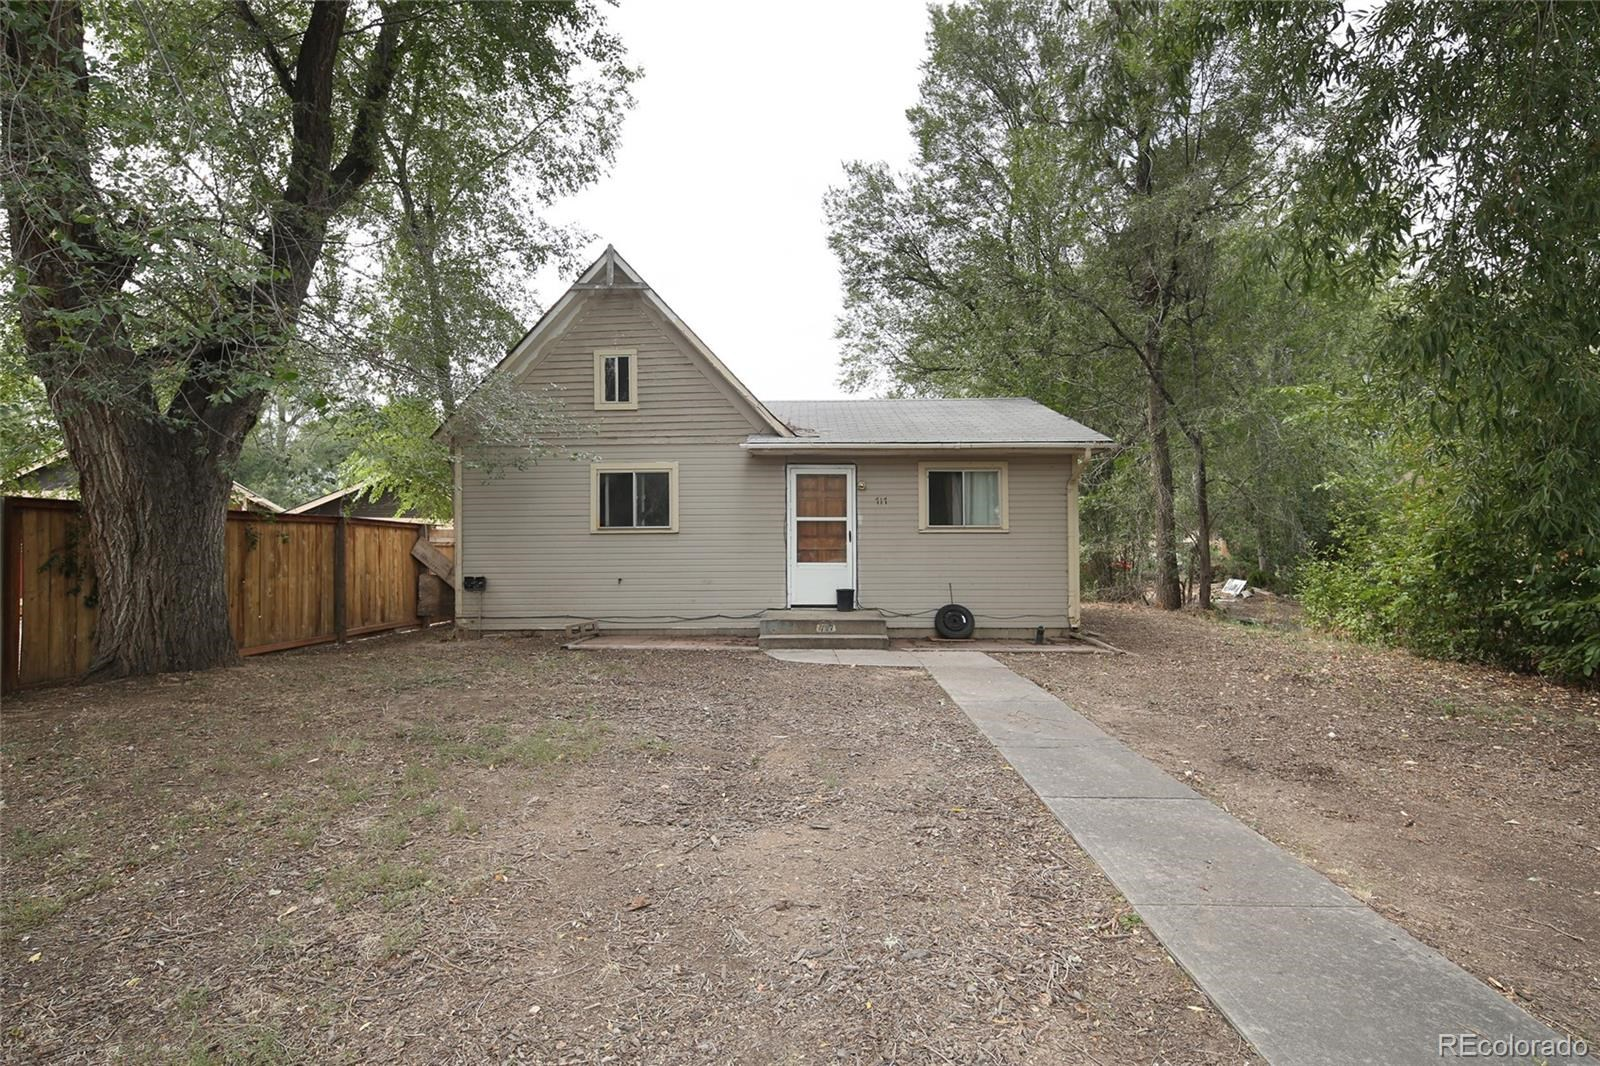 MLS# 6260735 - 2 - 717 Lindenmeier Road, Fort Collins, CO 80524